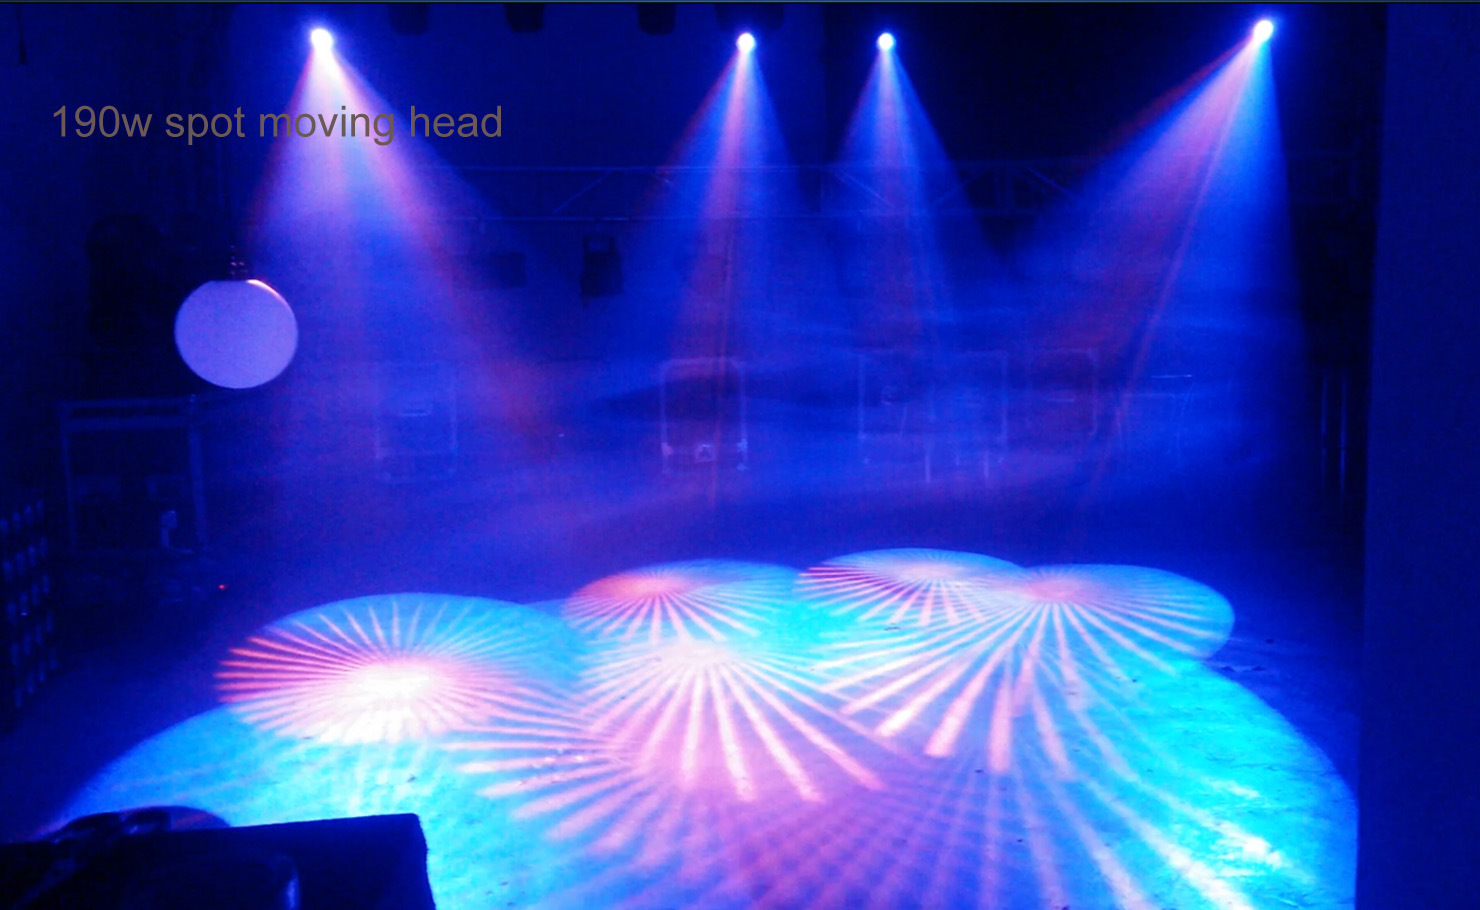 DMX LED 190W Spot Moving Head Light for Professional Stage (HL-190ST)